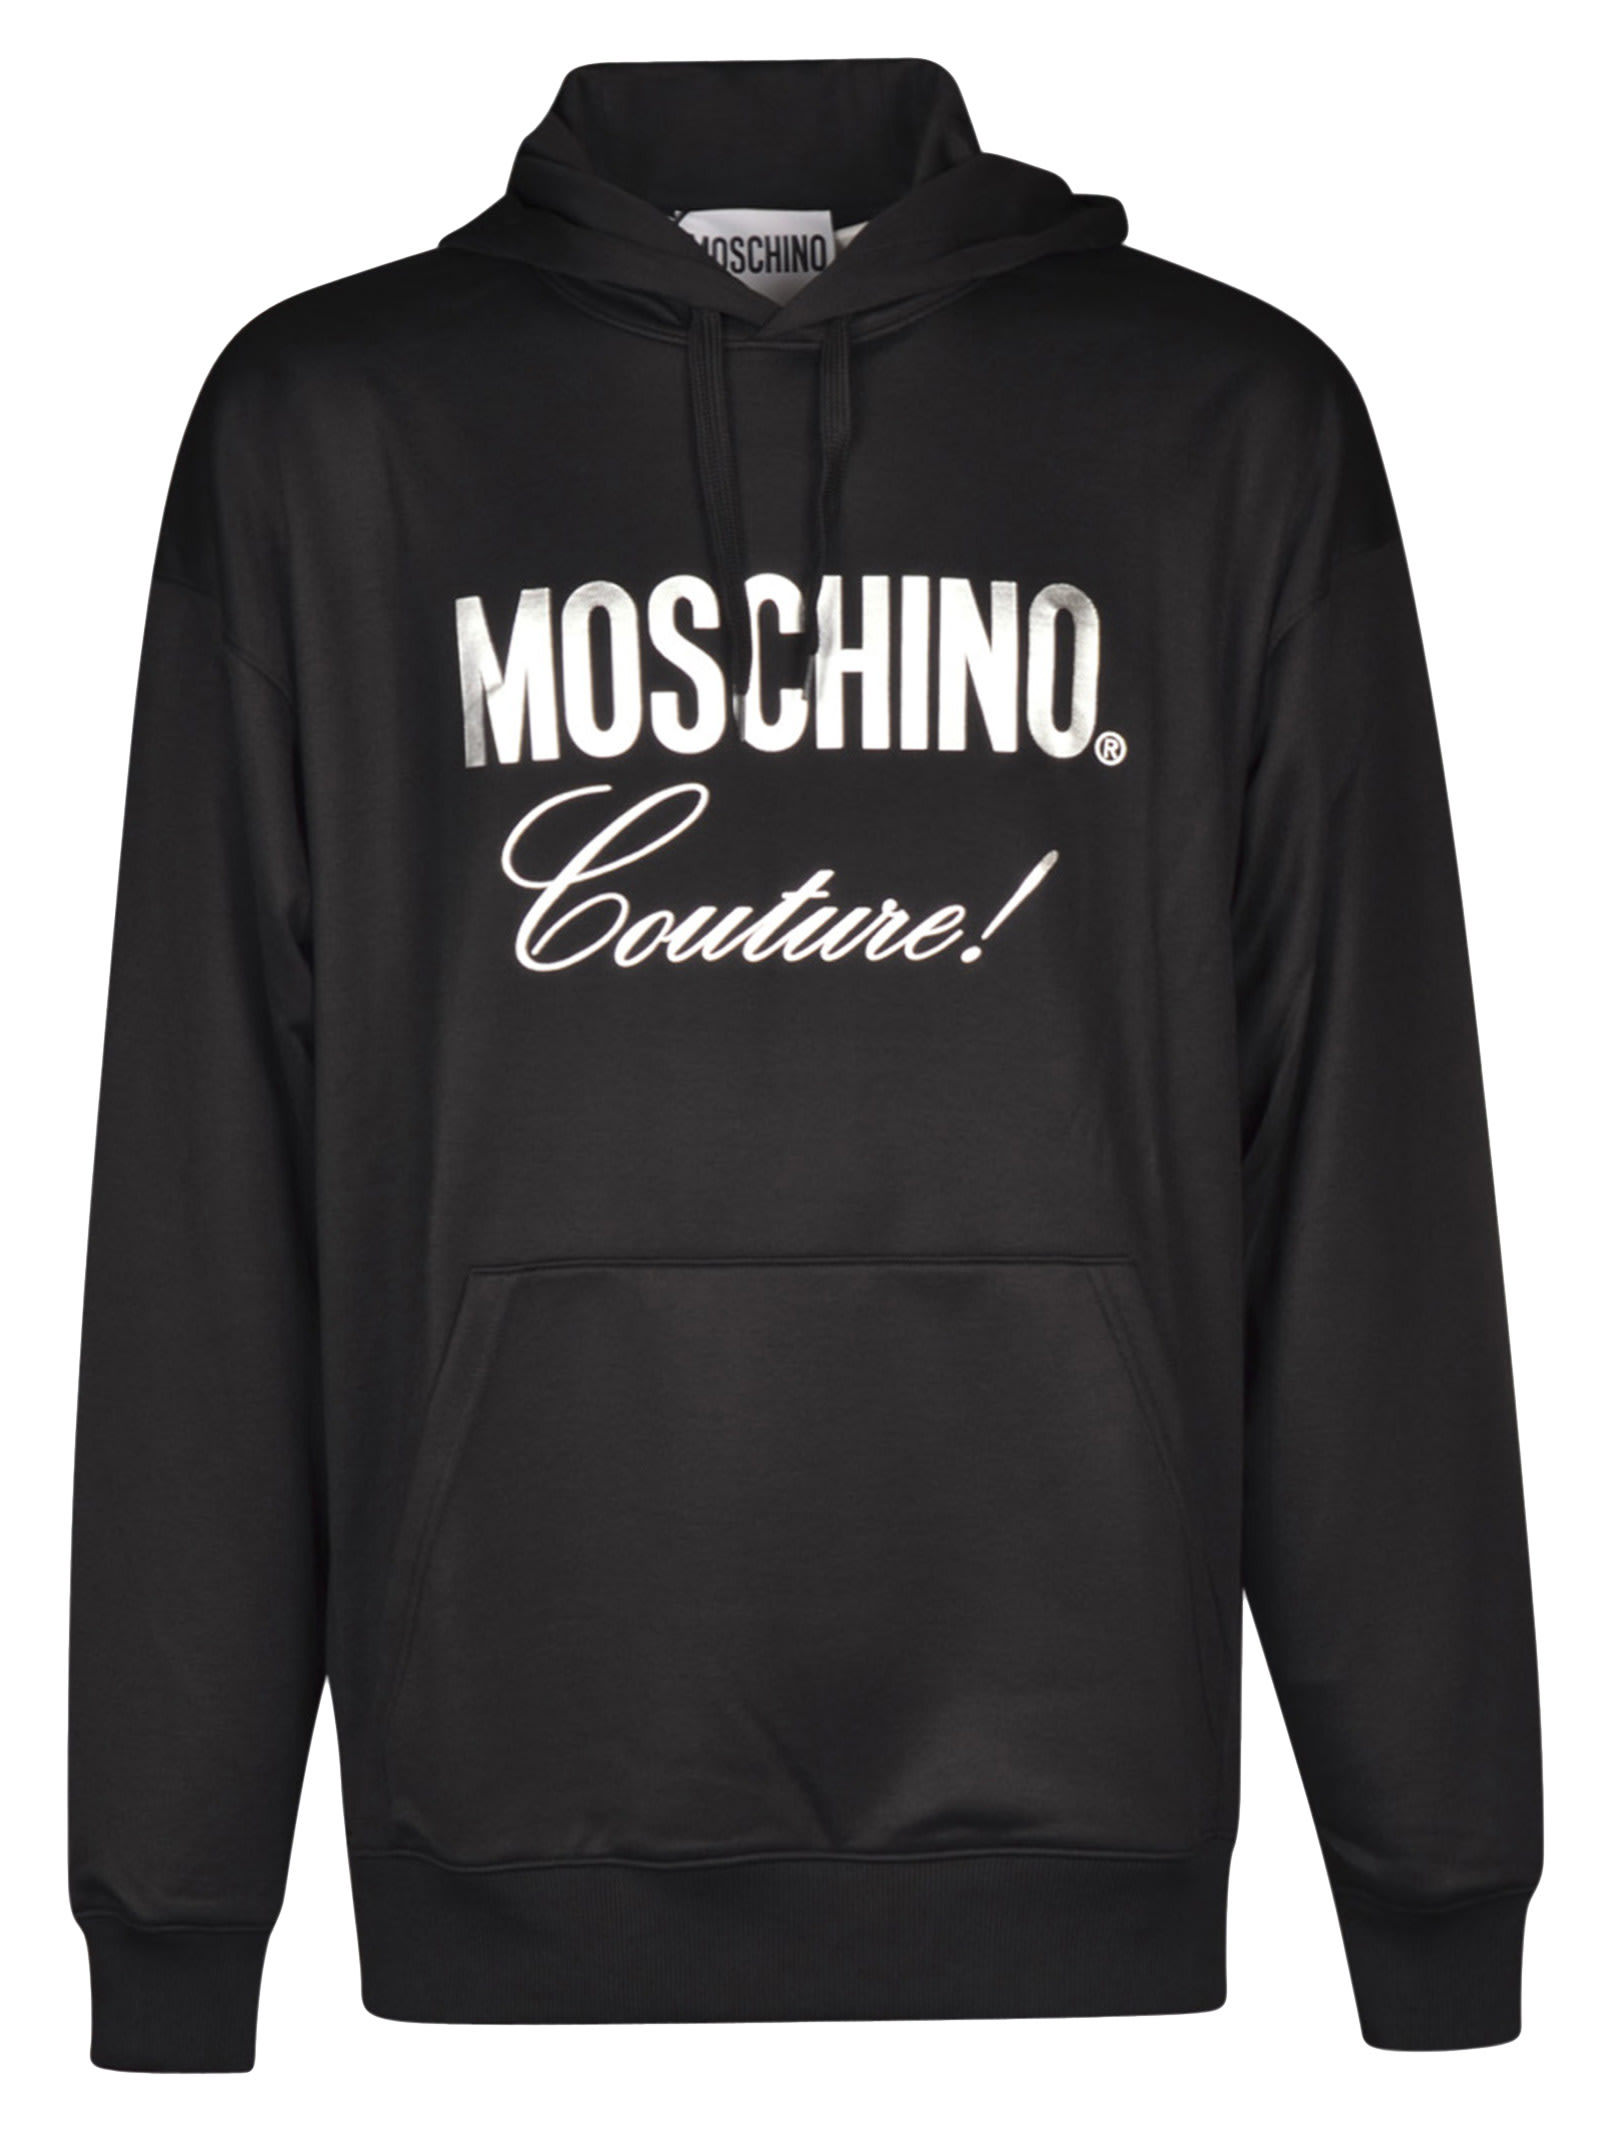 Moschino Couture Printed Hoodie